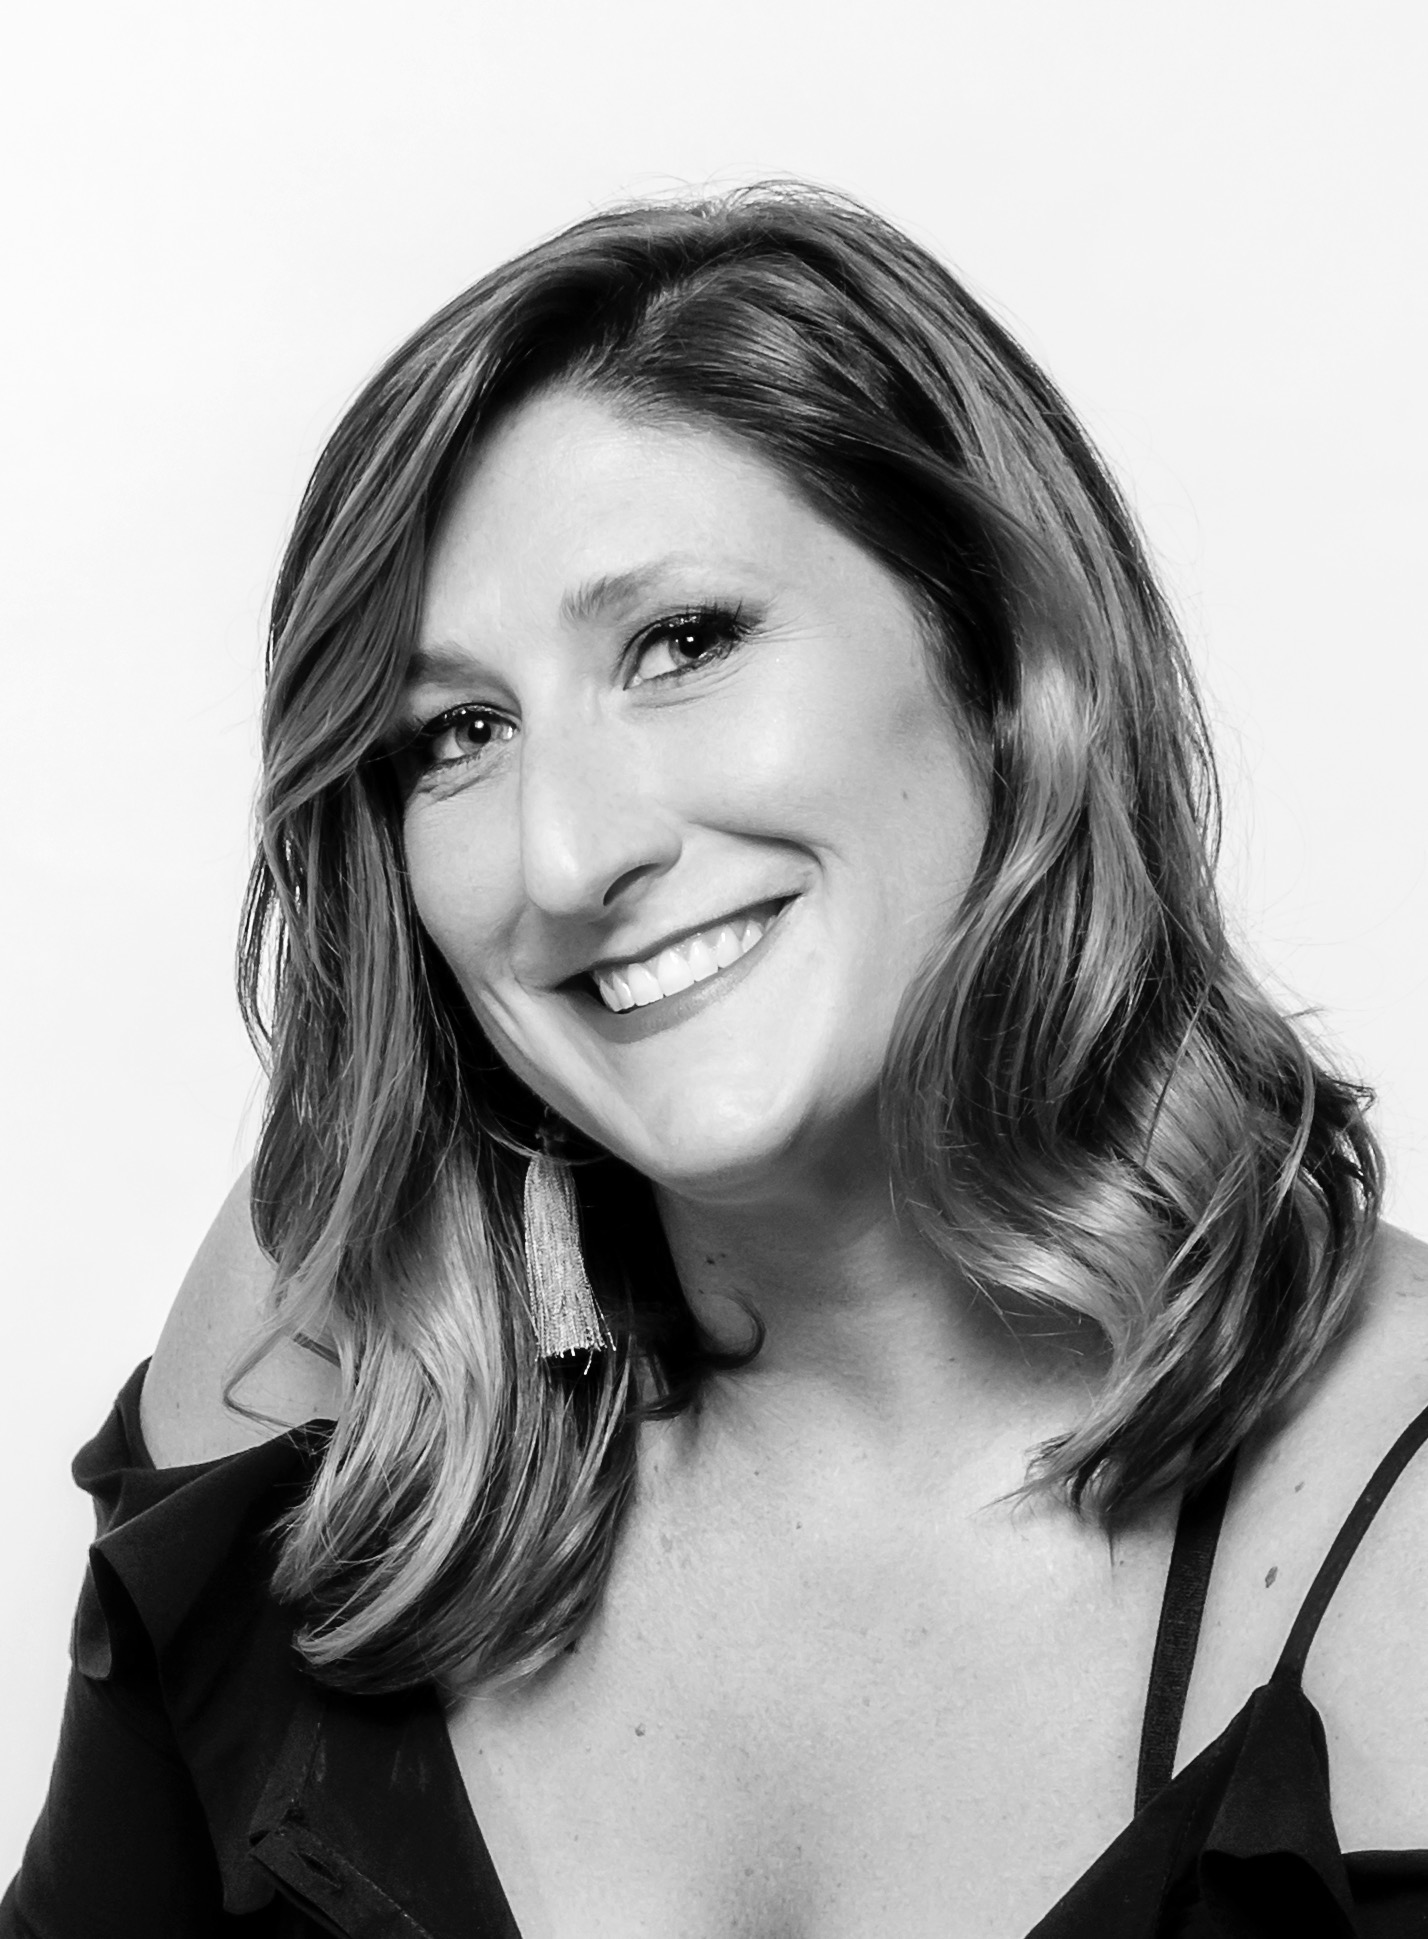 meet christina marie - Becoming one of the top color specialists in Atlanta with 10 plus years of experience, Christina Marie handcrafts one of a kind experience for each of her clients. Exclusively focusing on color she offers the highest level of stylized work using a palate of personalized shades to compliment the clients skin tone and lifestyle.